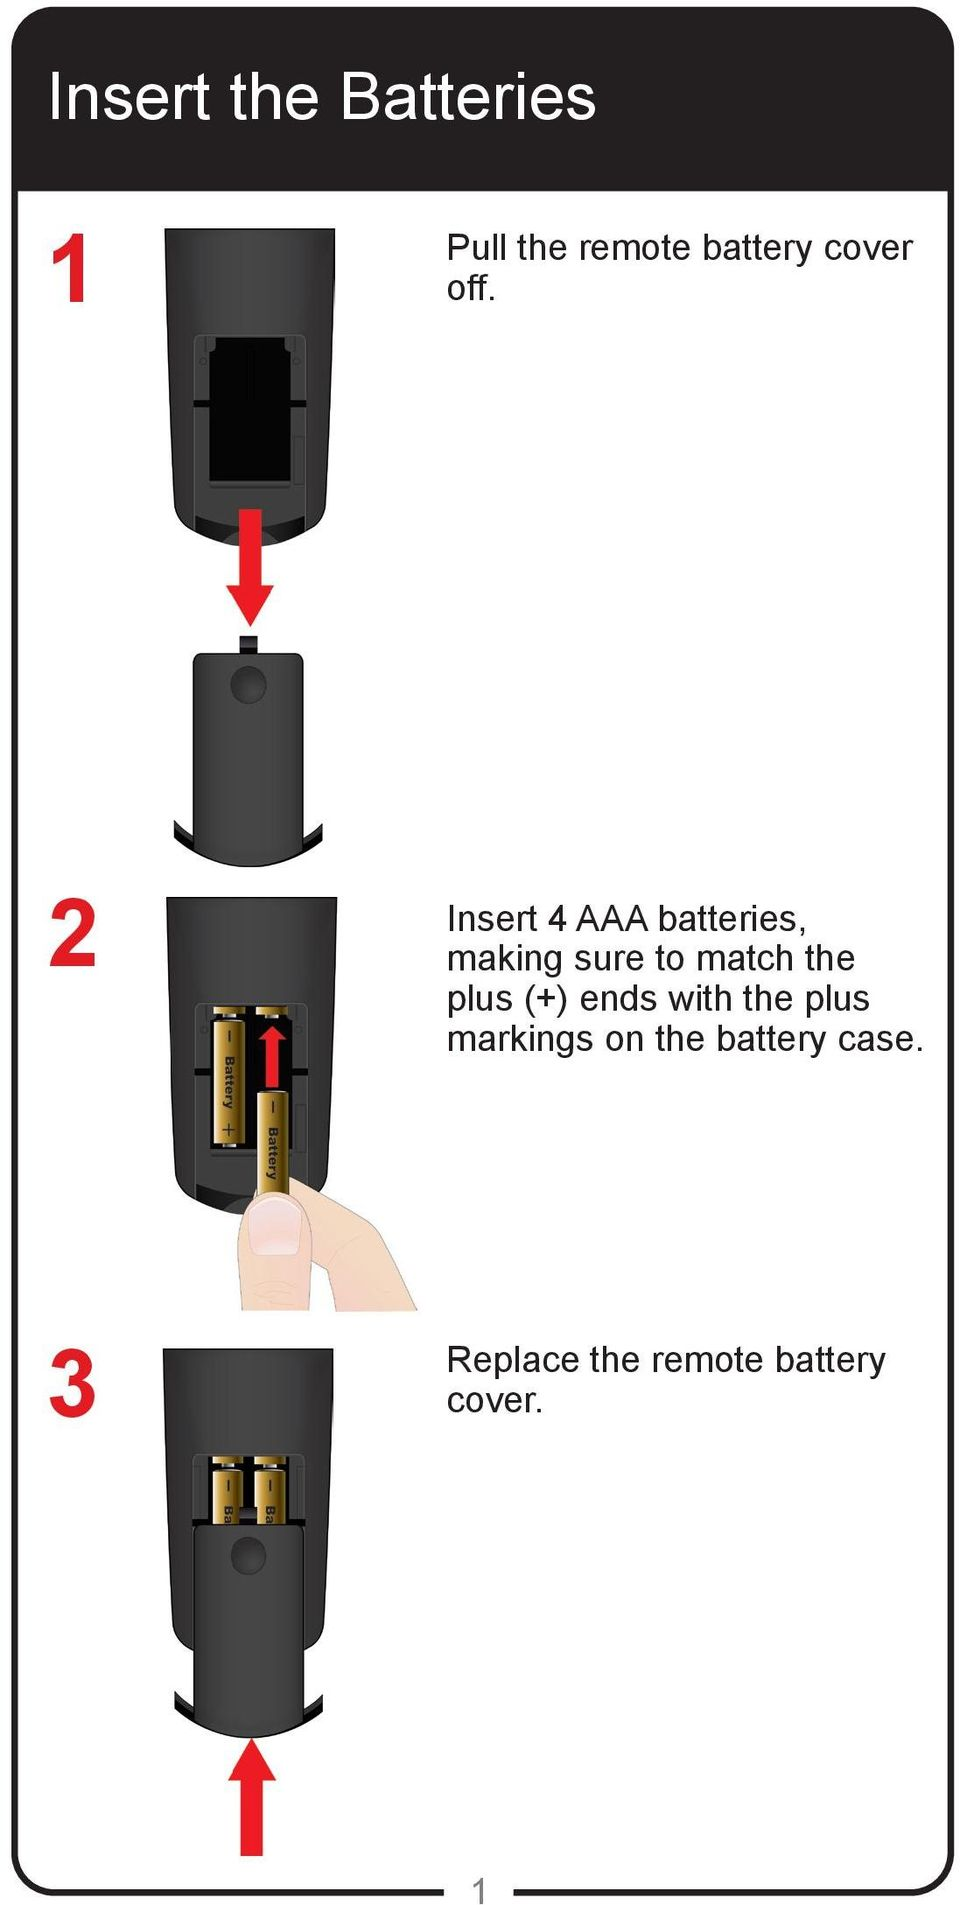 2 Insert 4 AAA batteries, making sure to match the